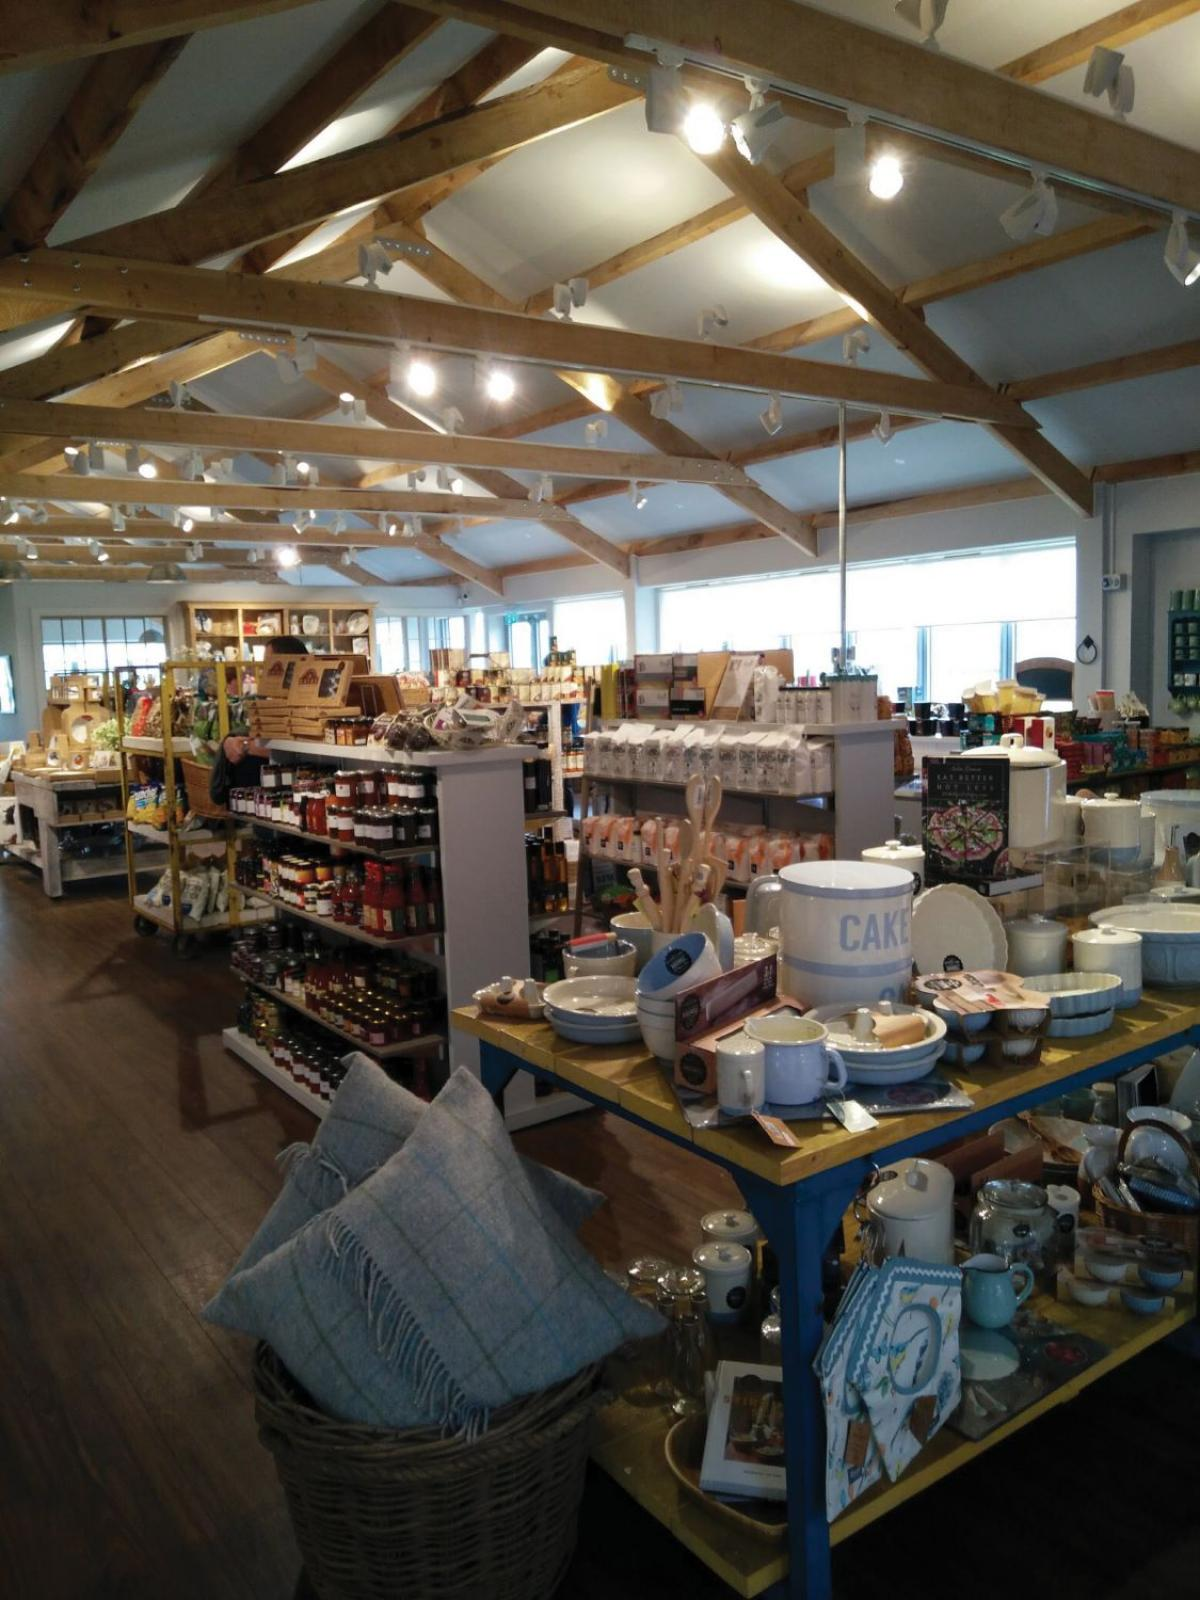 Images from Smiddy Farm Shop, Butchery & Café